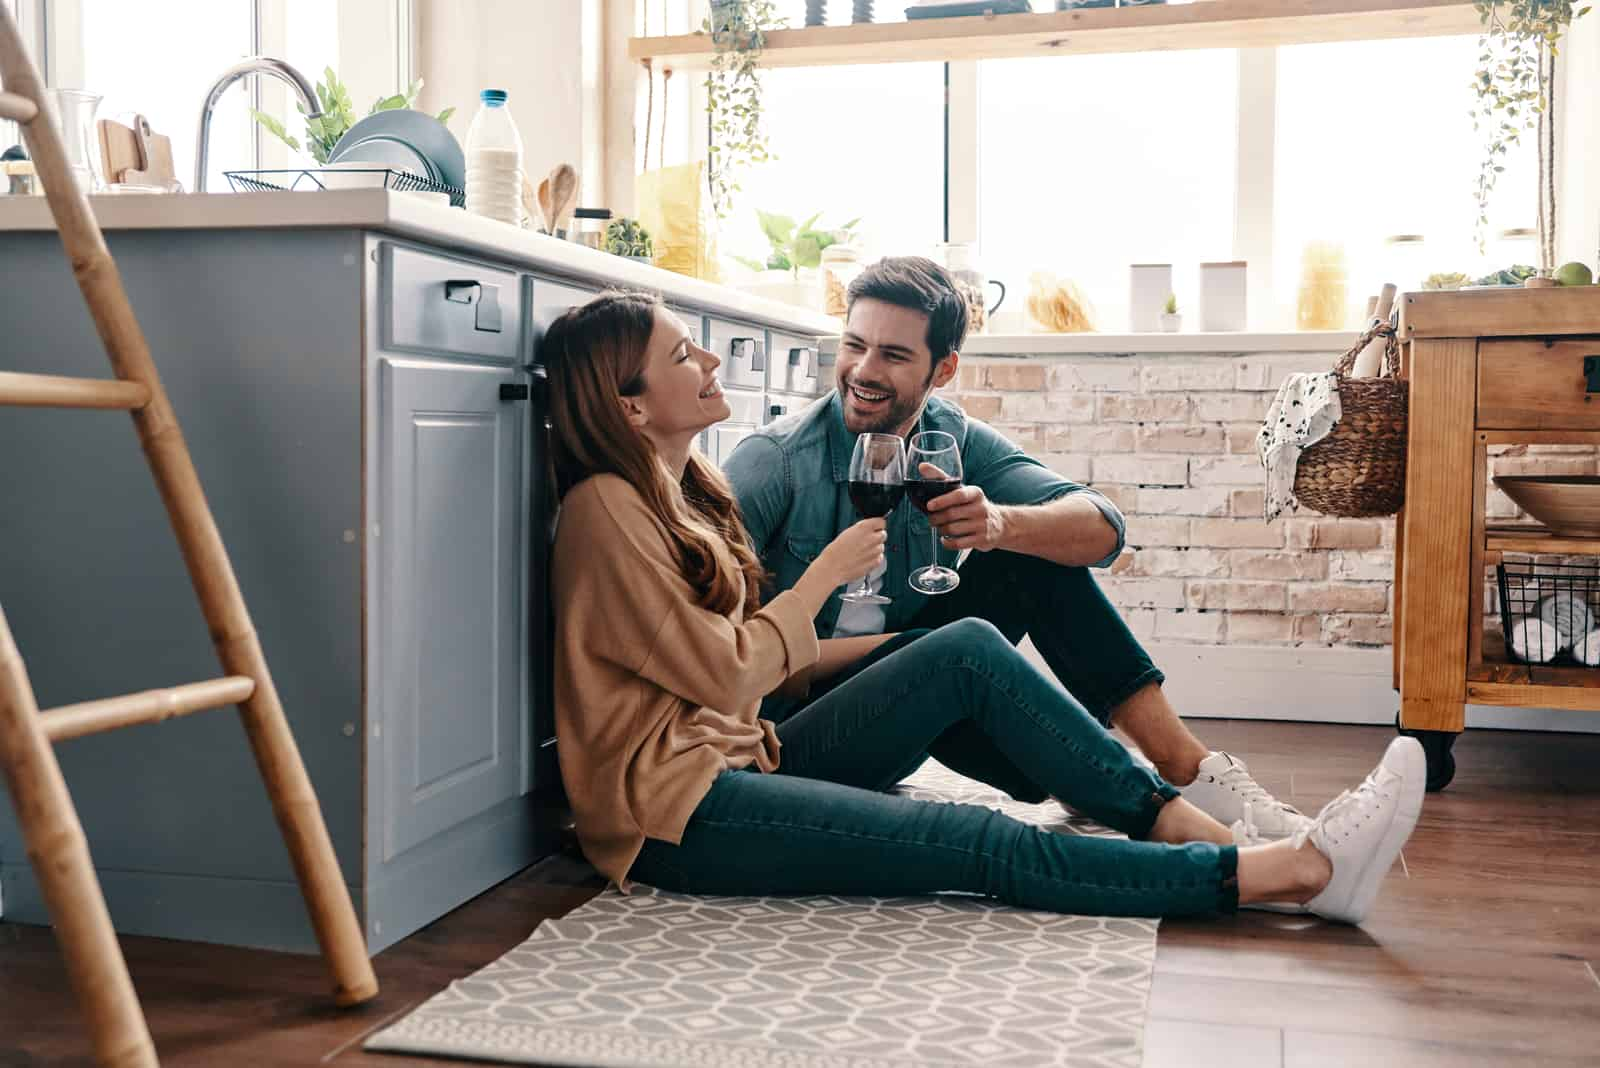 a smiling couple sitting on the floor drinking wine